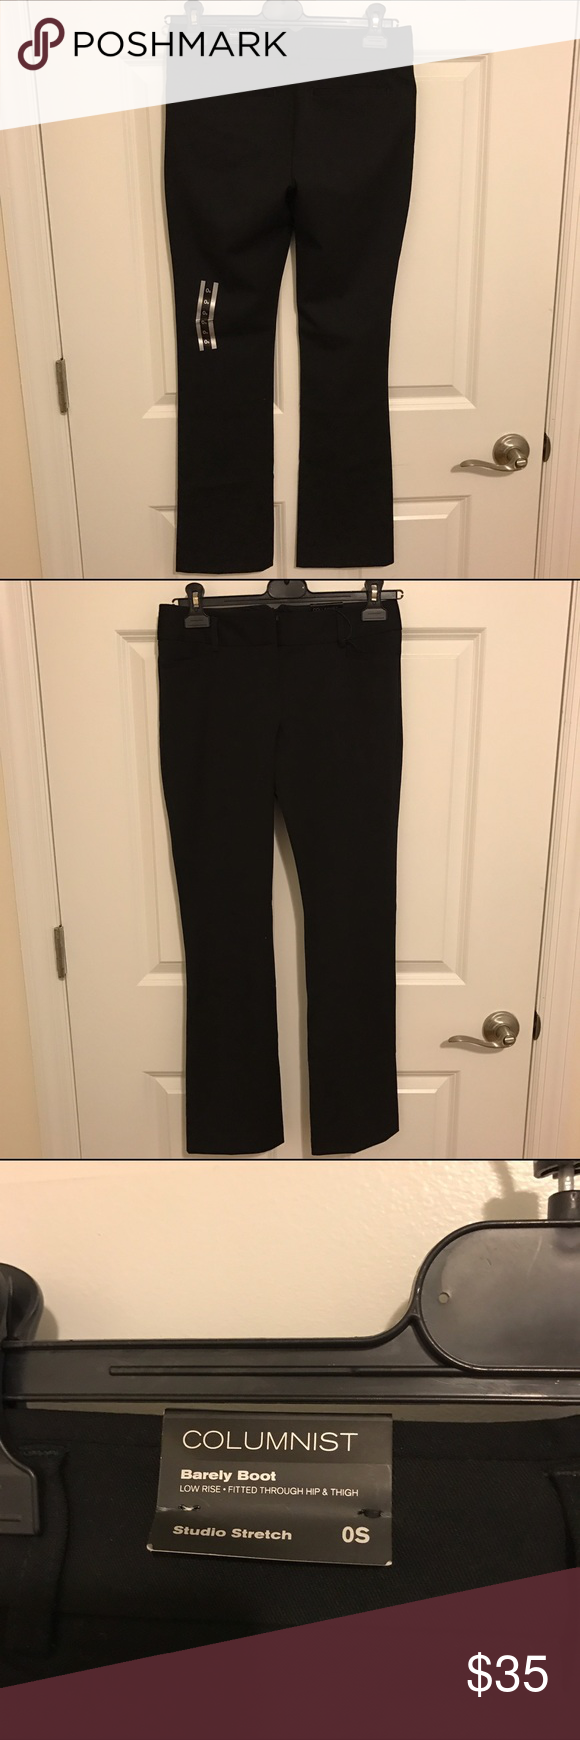 Express Columnist Barely Boot Pants - Low Rise Brand New working pants. Shape and cut are perfect. Selling it because I have too many black color pants. Express Pants Boot Cut & Flare